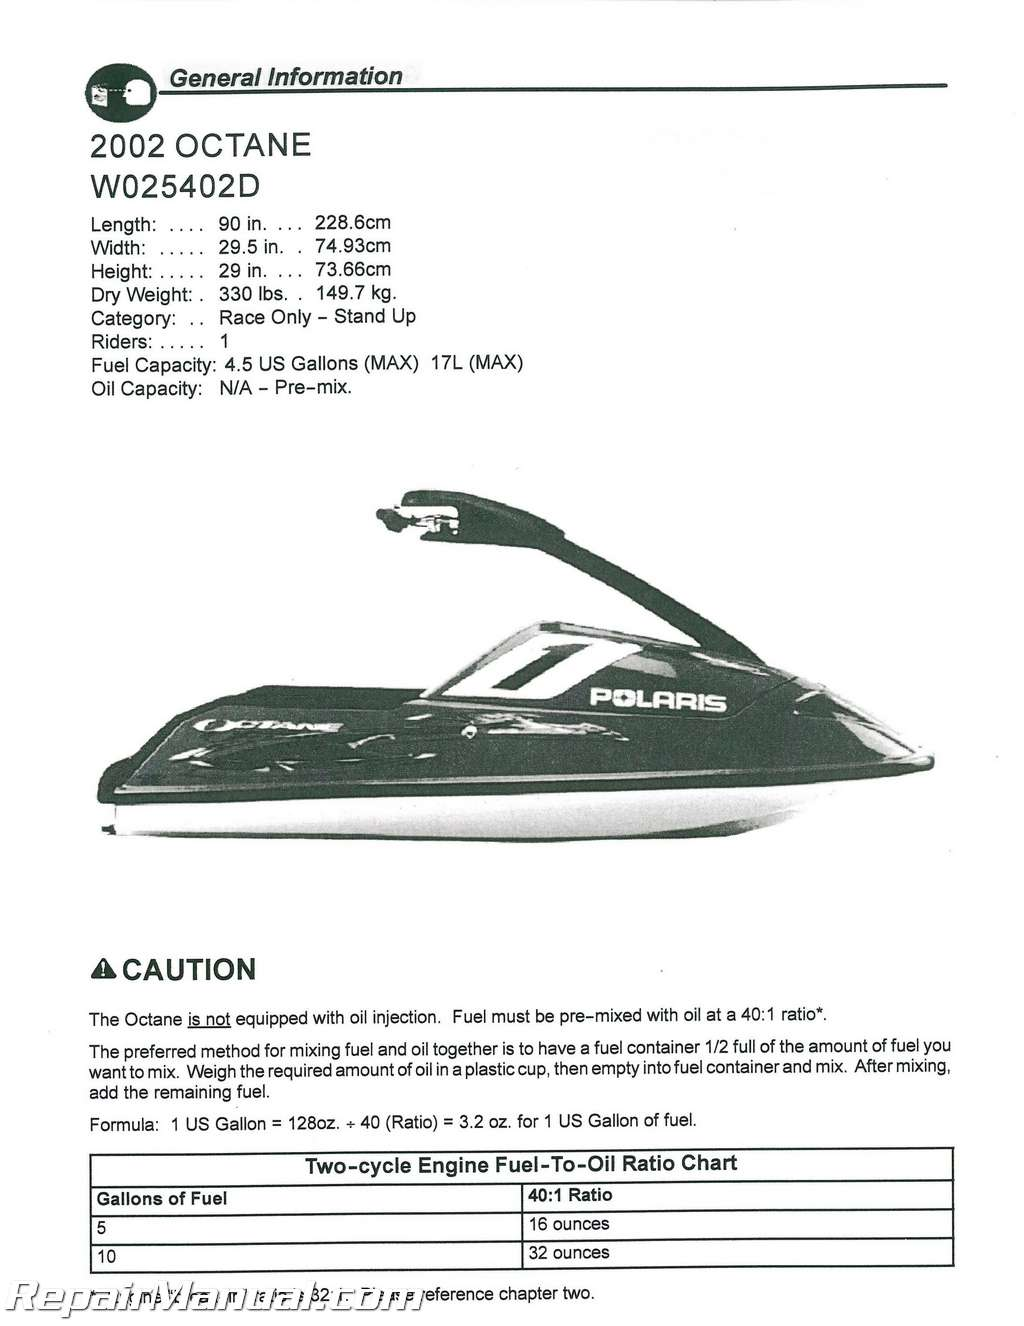 click to expand Array - 2002 polaris octane and 2003 polaris octane update  packet service manual rh repairmanual com Array - kawasaki jet ski ...